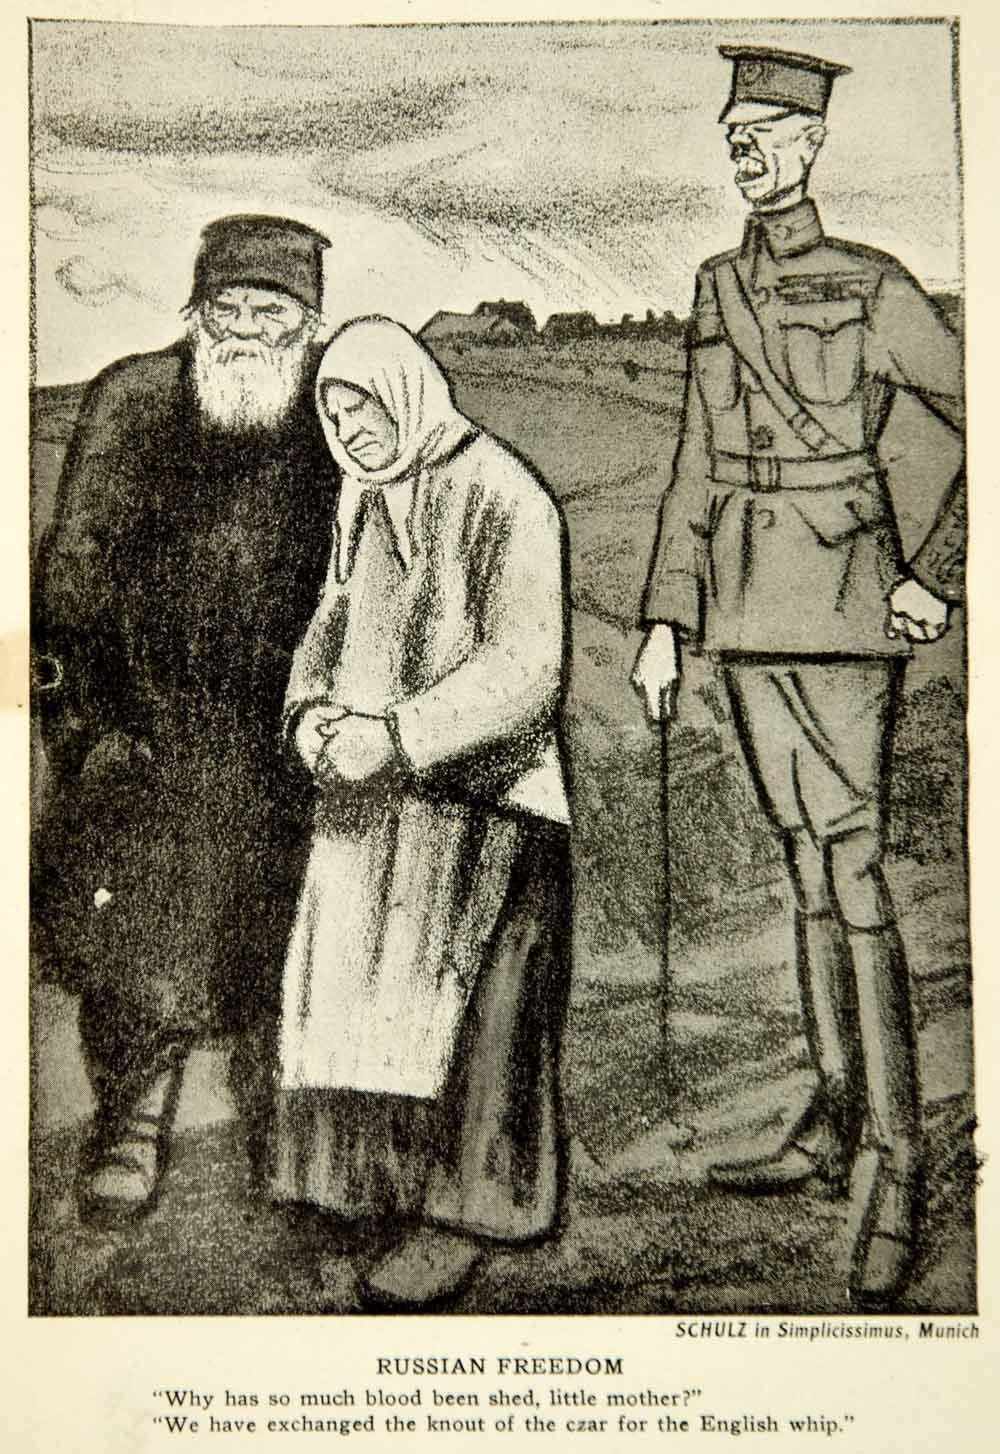 1917 Print World War I Cartoon Wilhelm Schulz Simplicissimus Russian Peasants